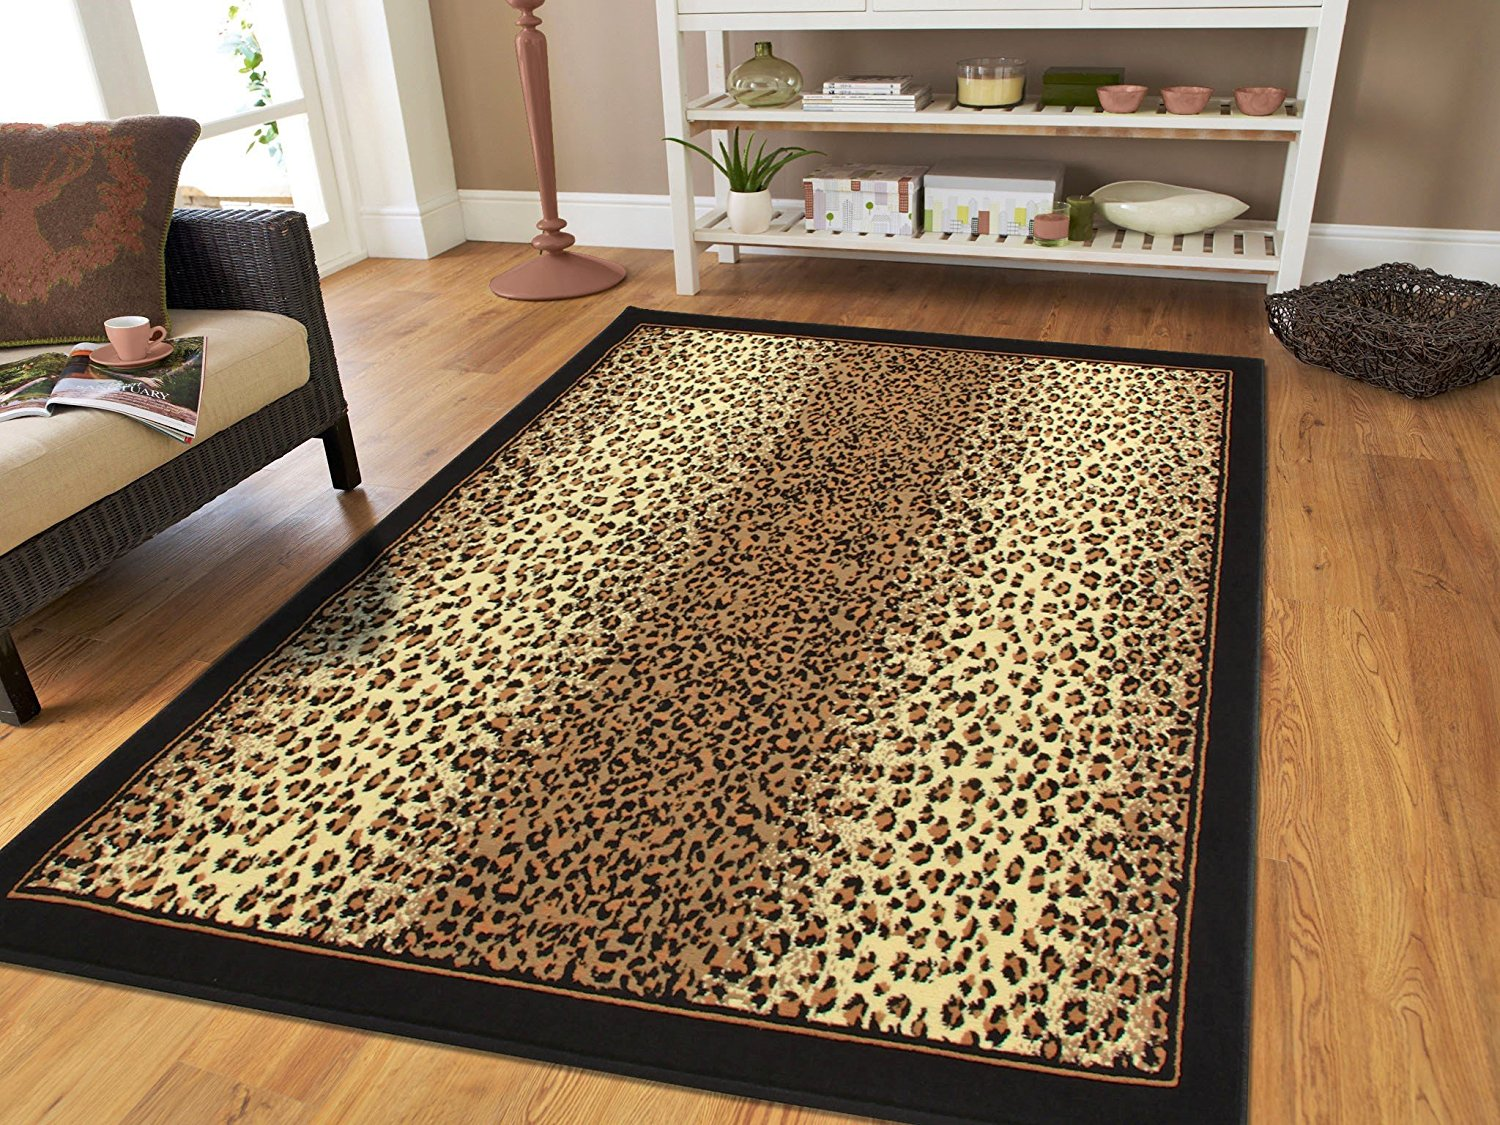 small rugs amazon.com: brown checkered cheetah rug animal long 2x8 runner rug for  hallway TAPRBNS